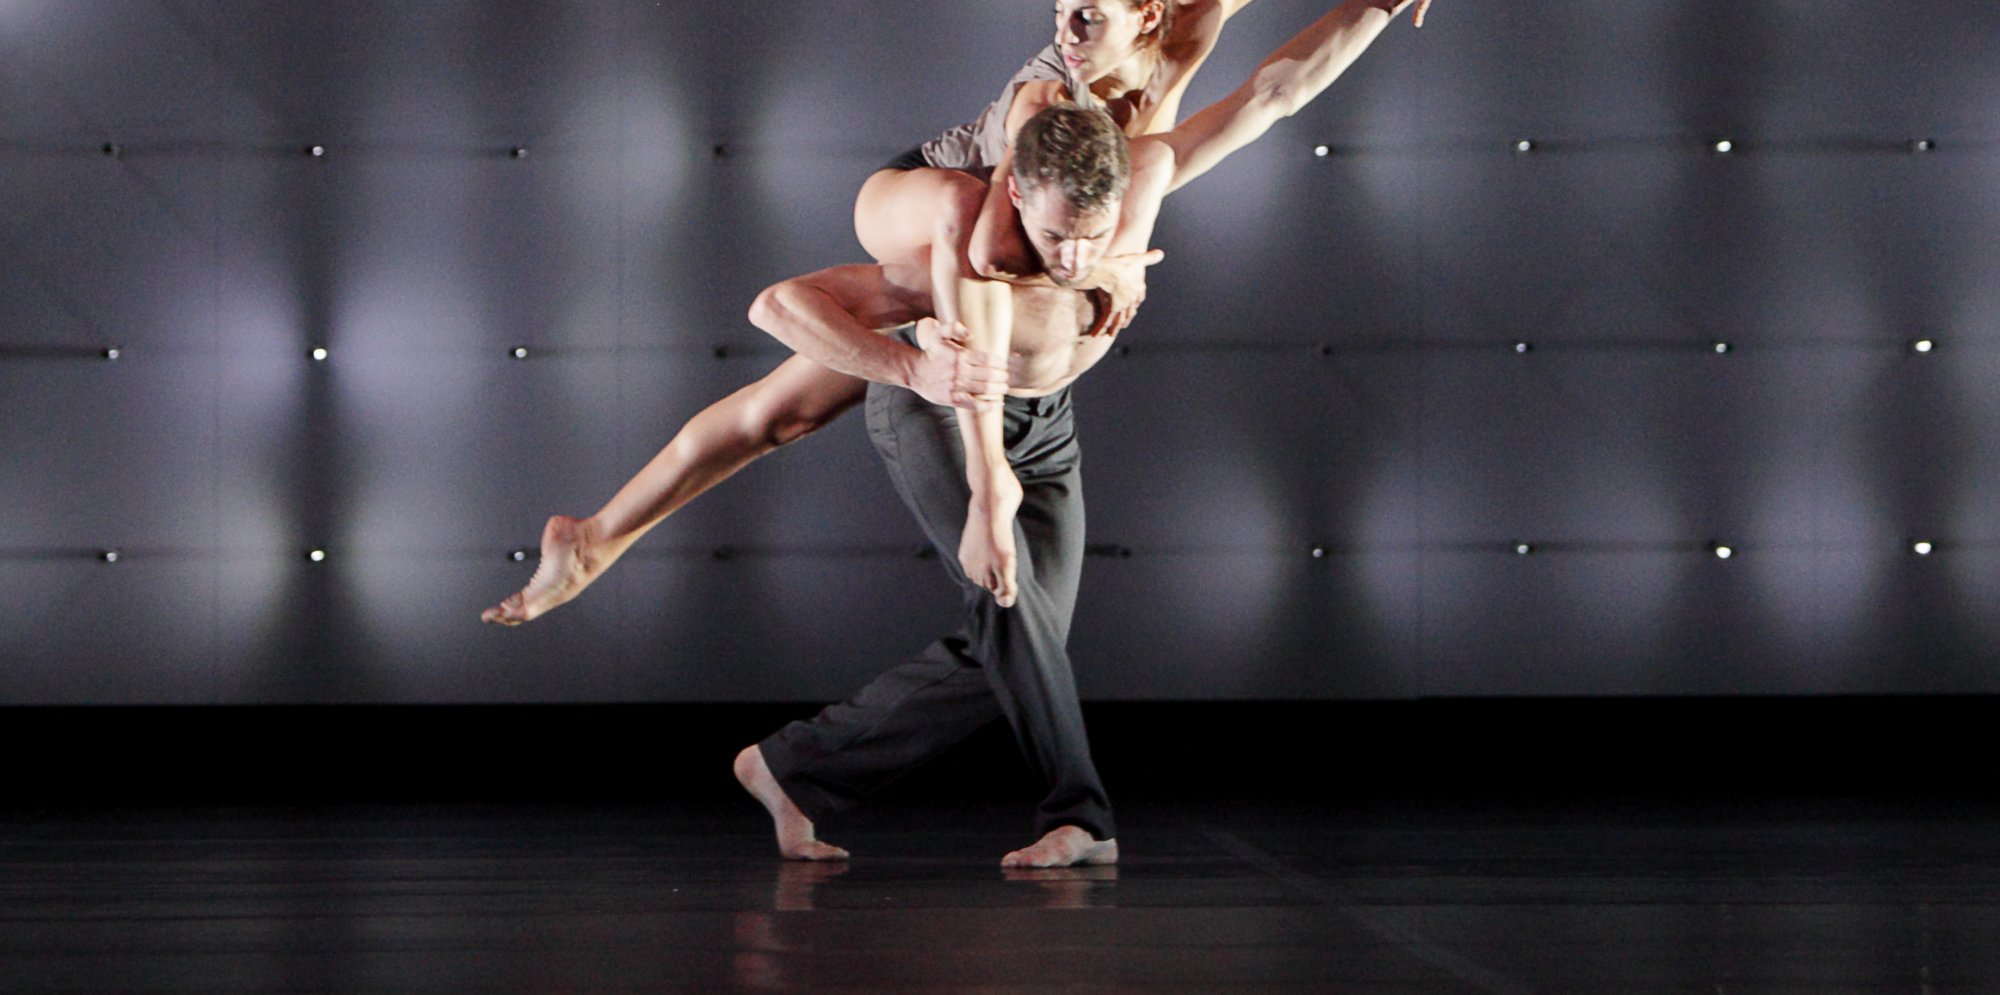 a man and a woman are dancing. she is lying across his back